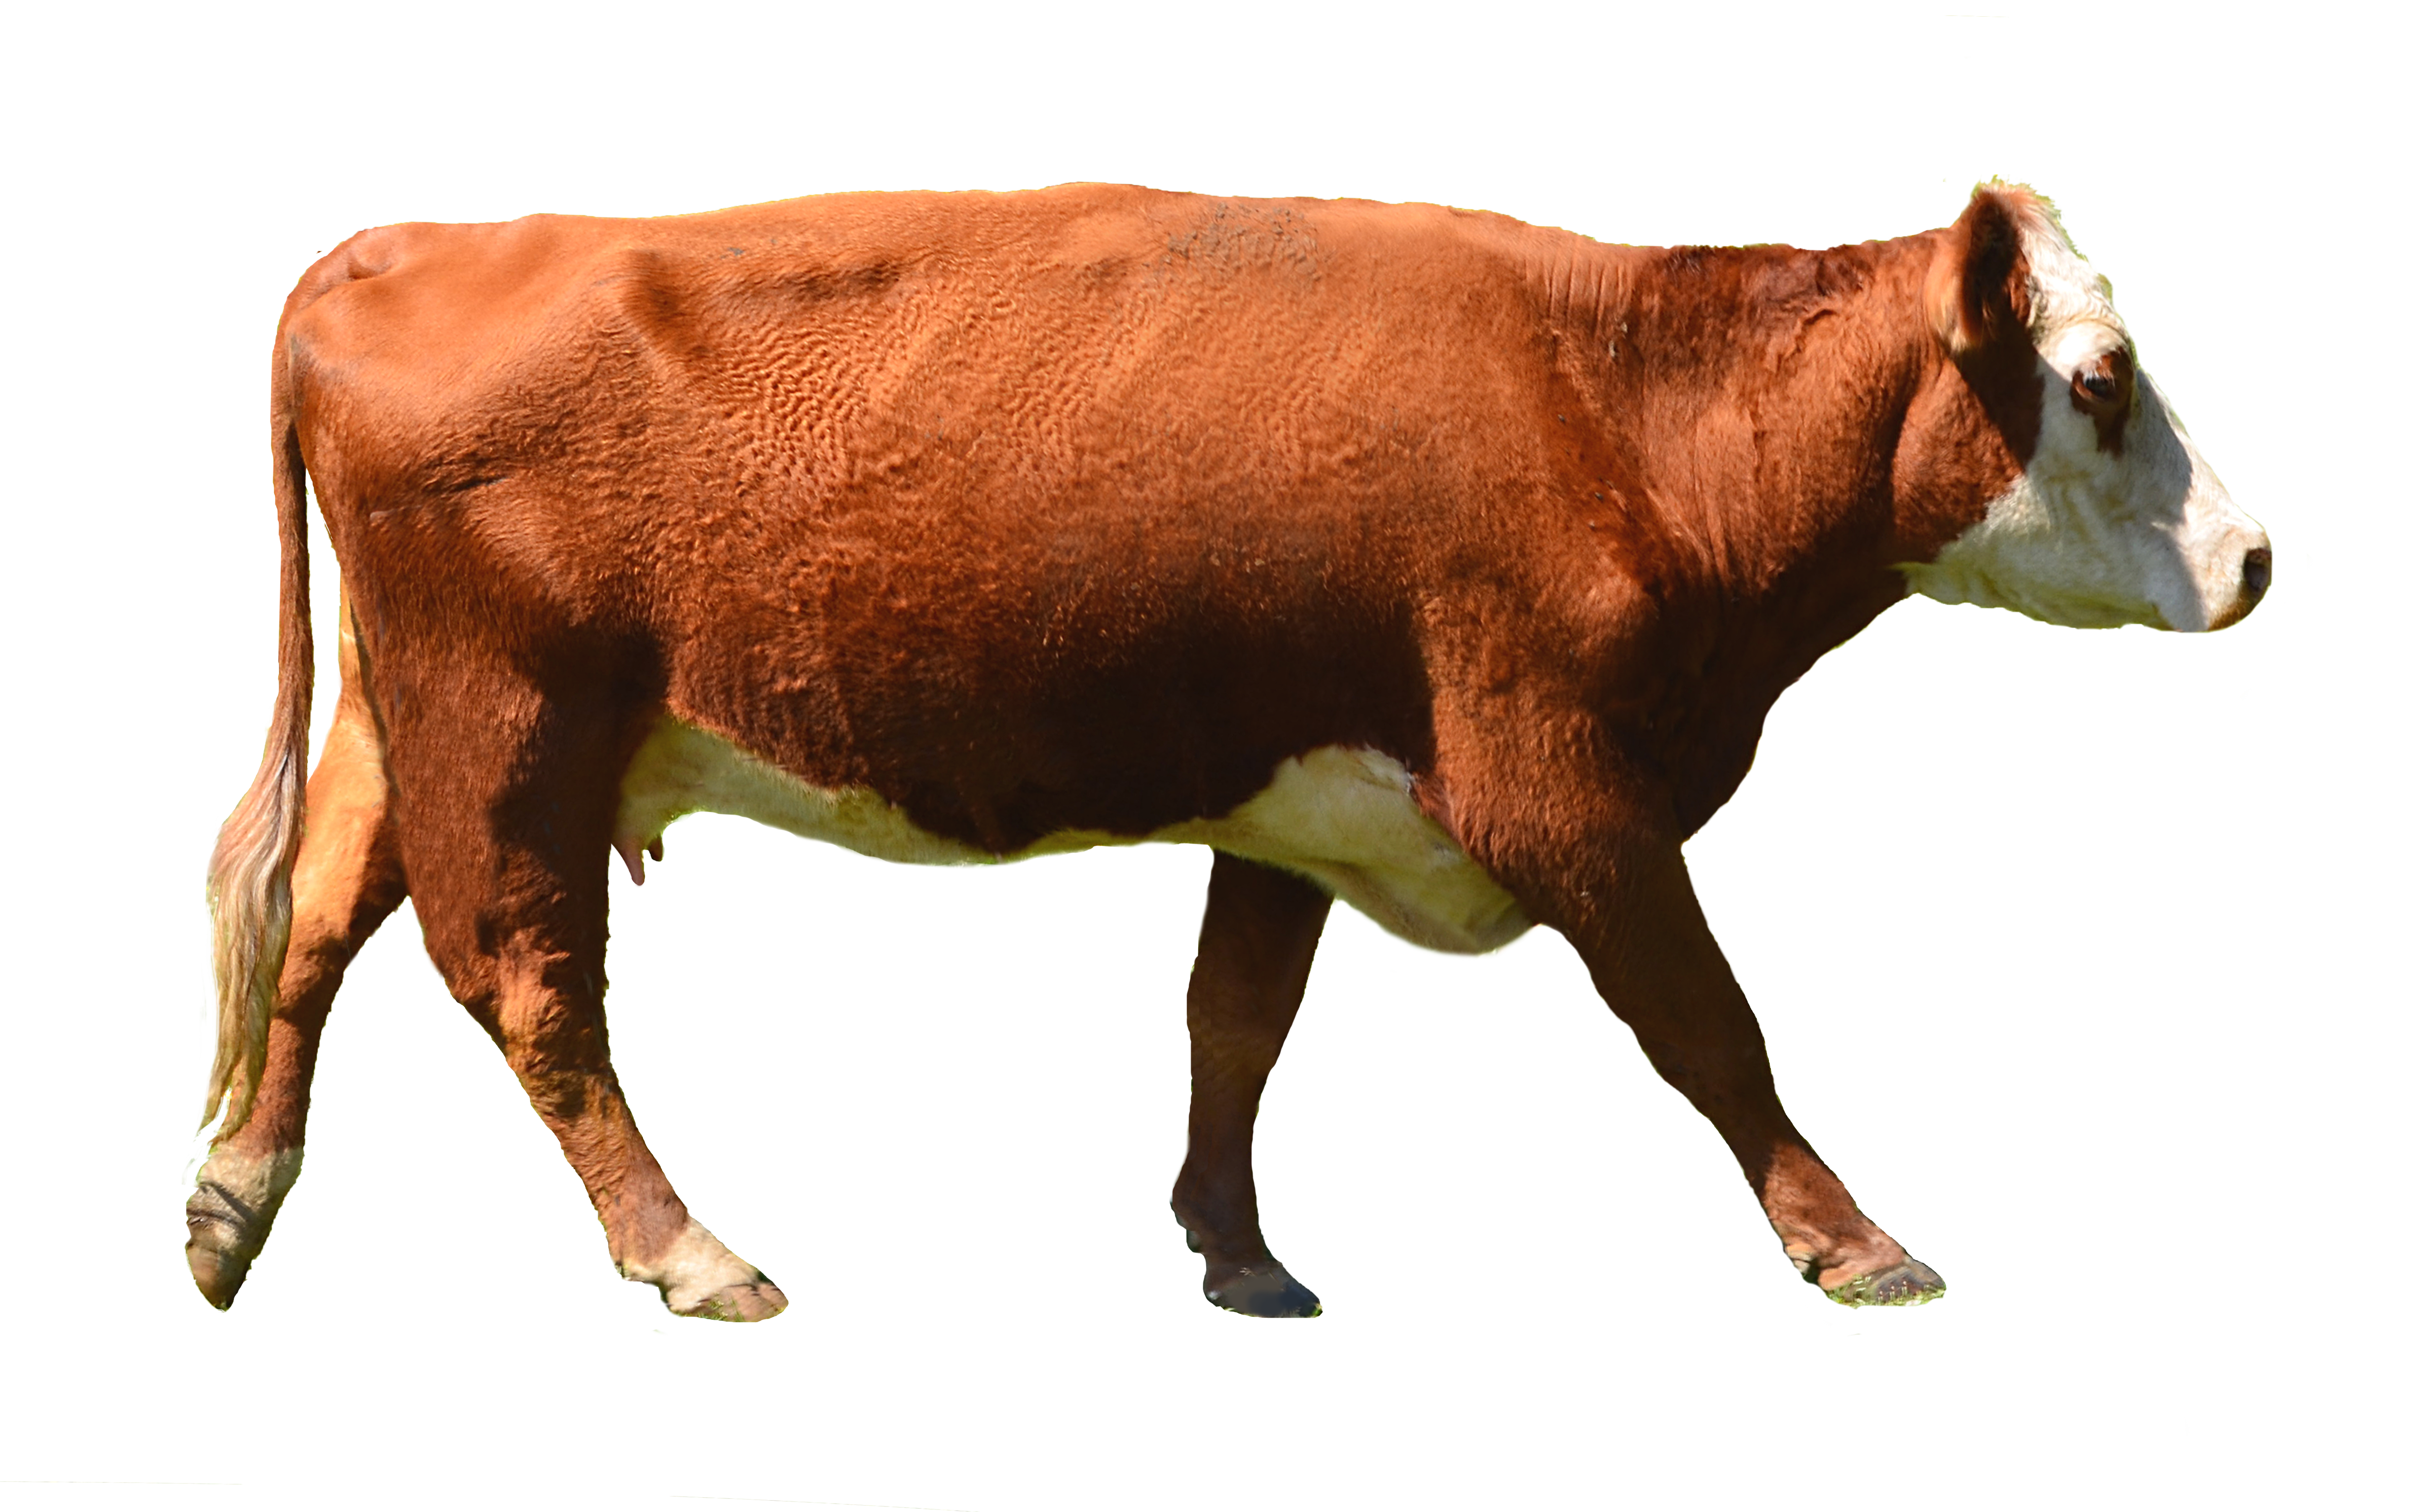 . PlusPng.com Cow PNG Stock Photo 0010 Complete CutOut By Annamae22 - Cow HD PNG